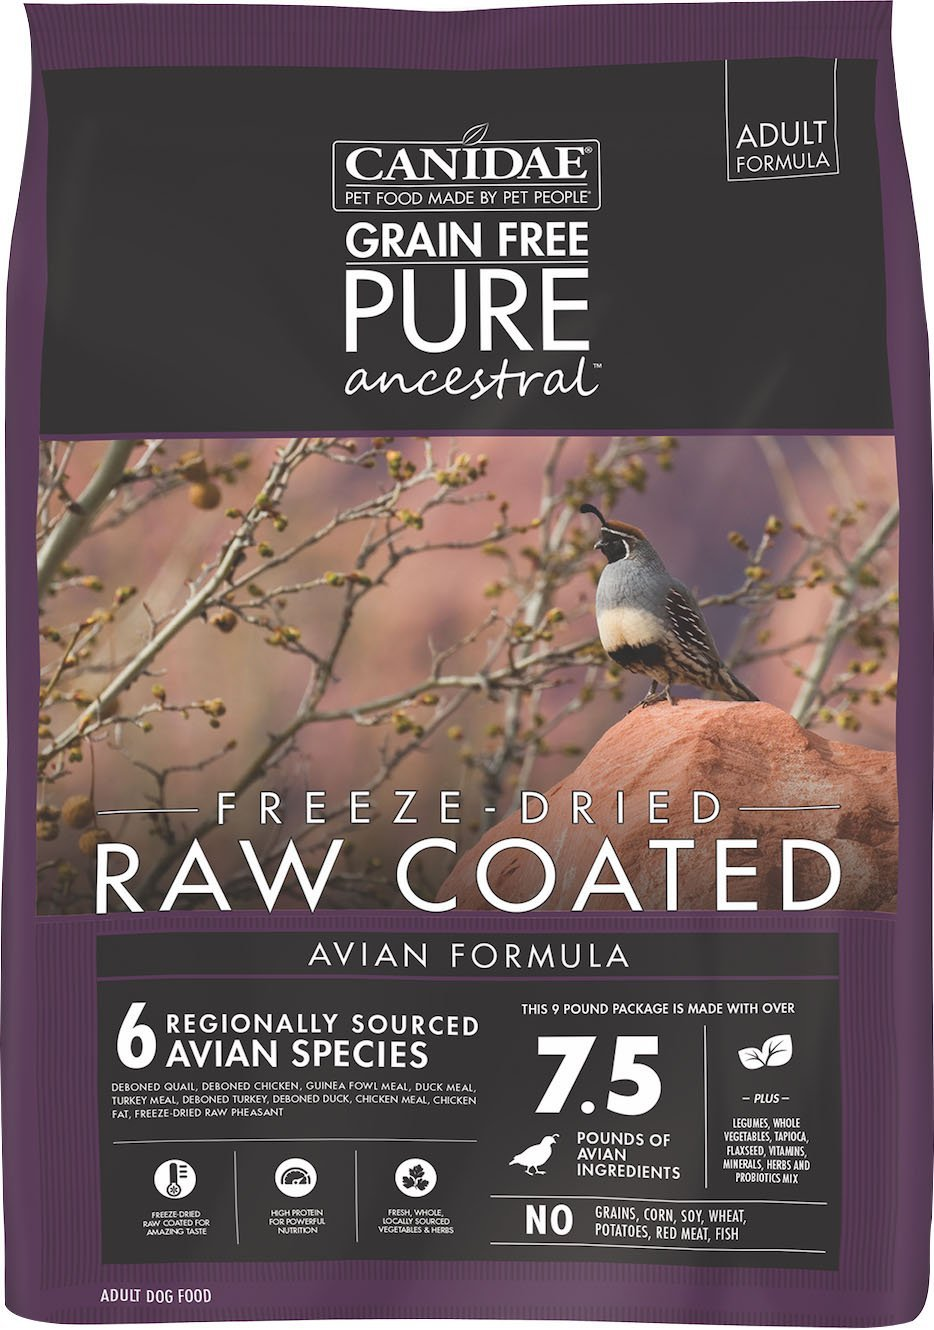 Dog Food Canidae Pure Ancestral Raw Coated Avian Dry Dog Fo 640461018499 TP012196